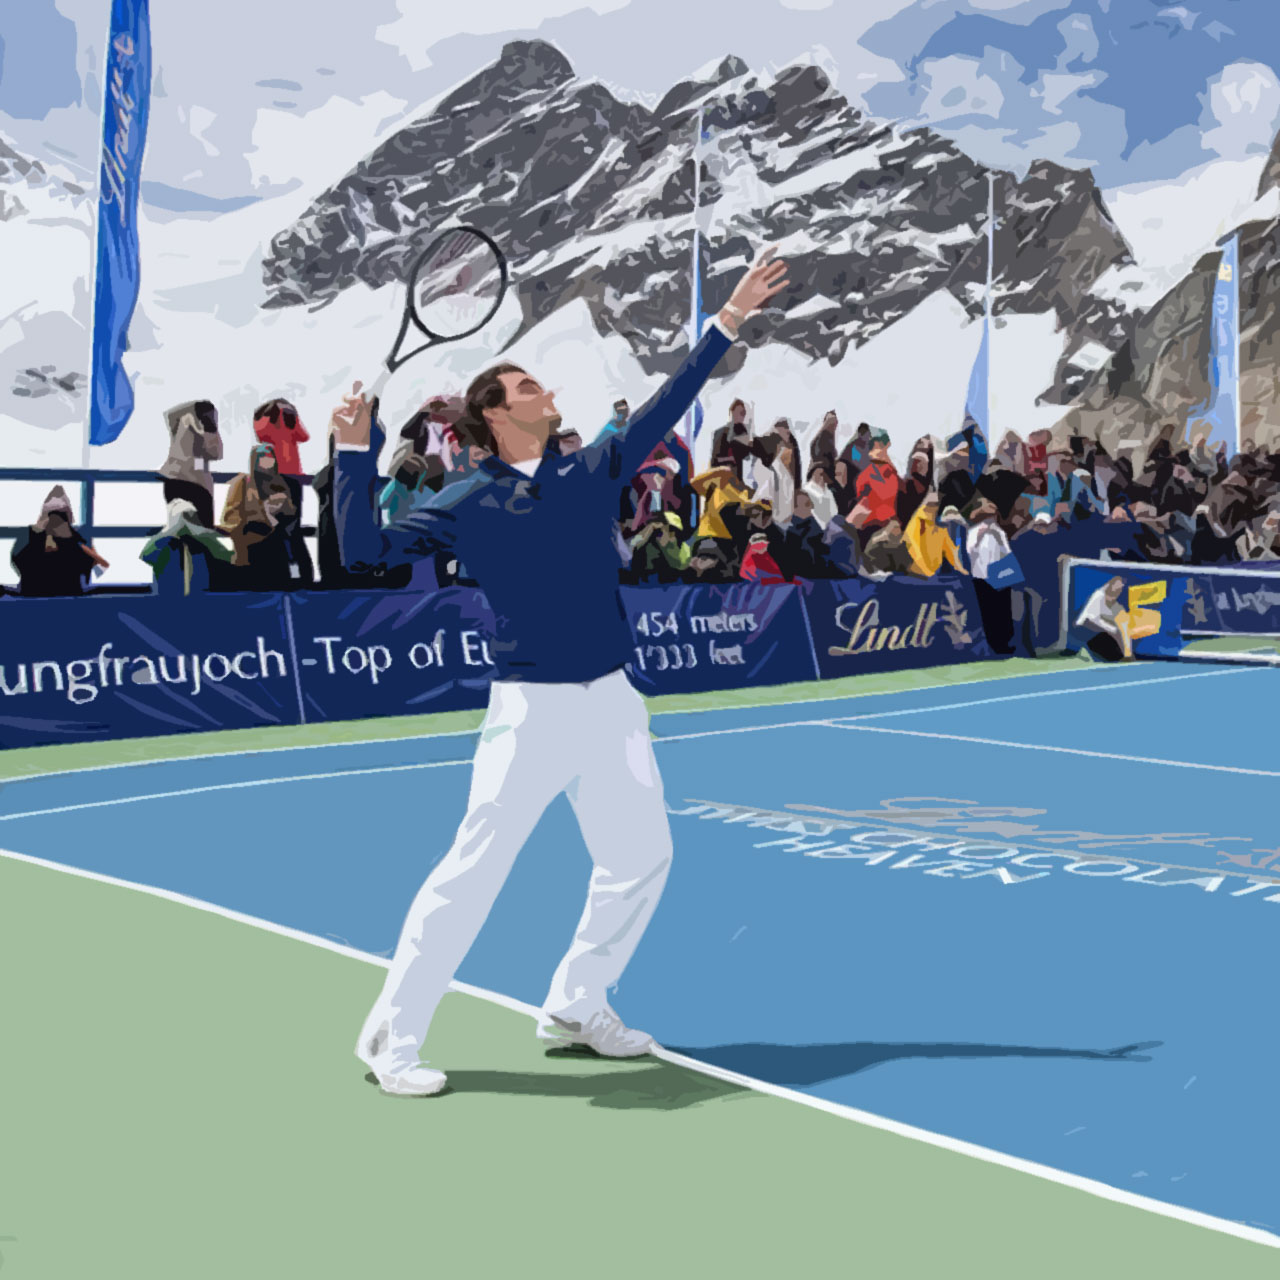 Roger Federer serves against Lindsey Vonn in the Swiss Alps